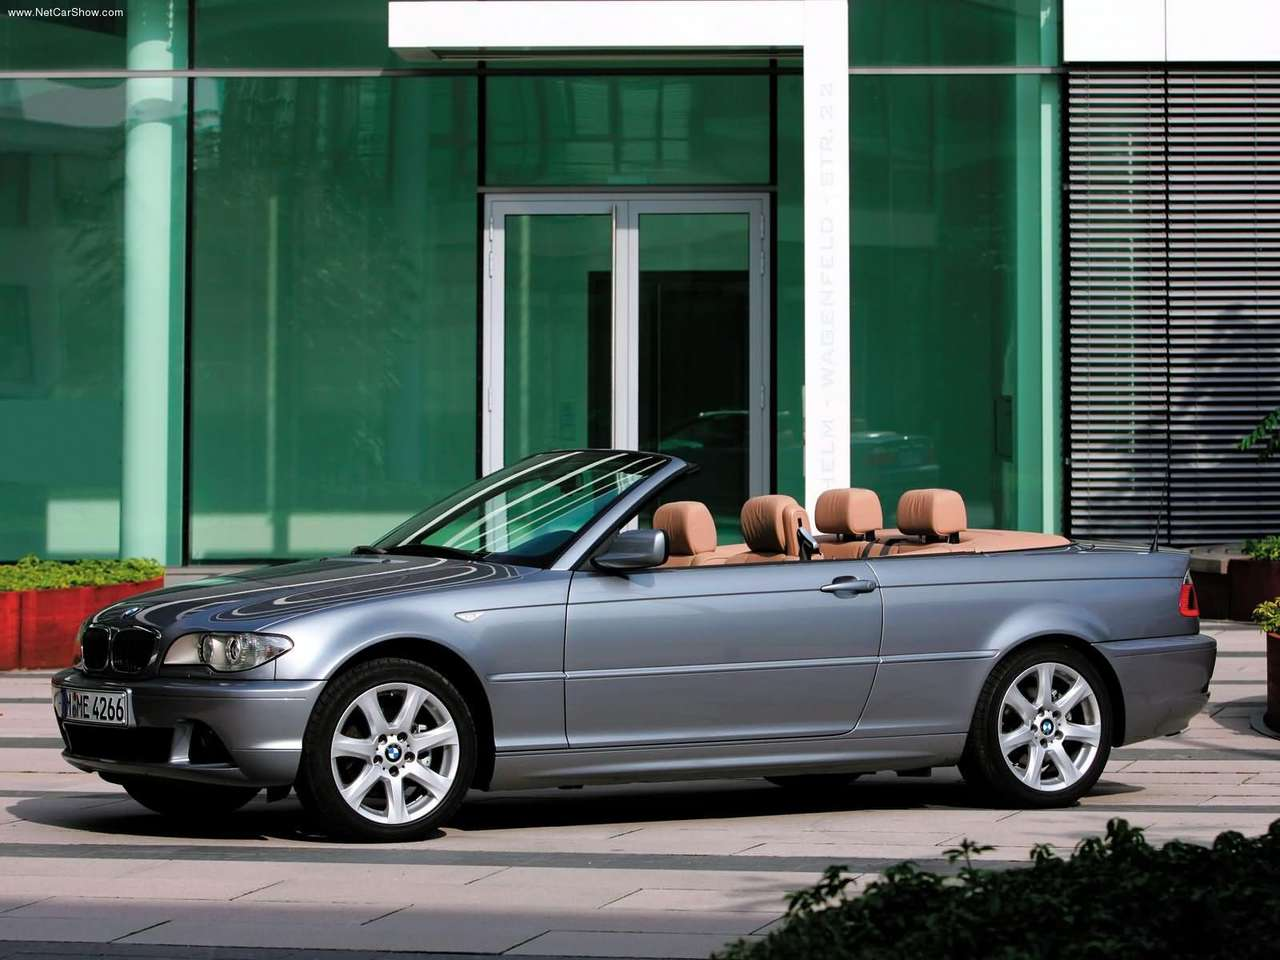 BMW 320Cd Convertible (E46)